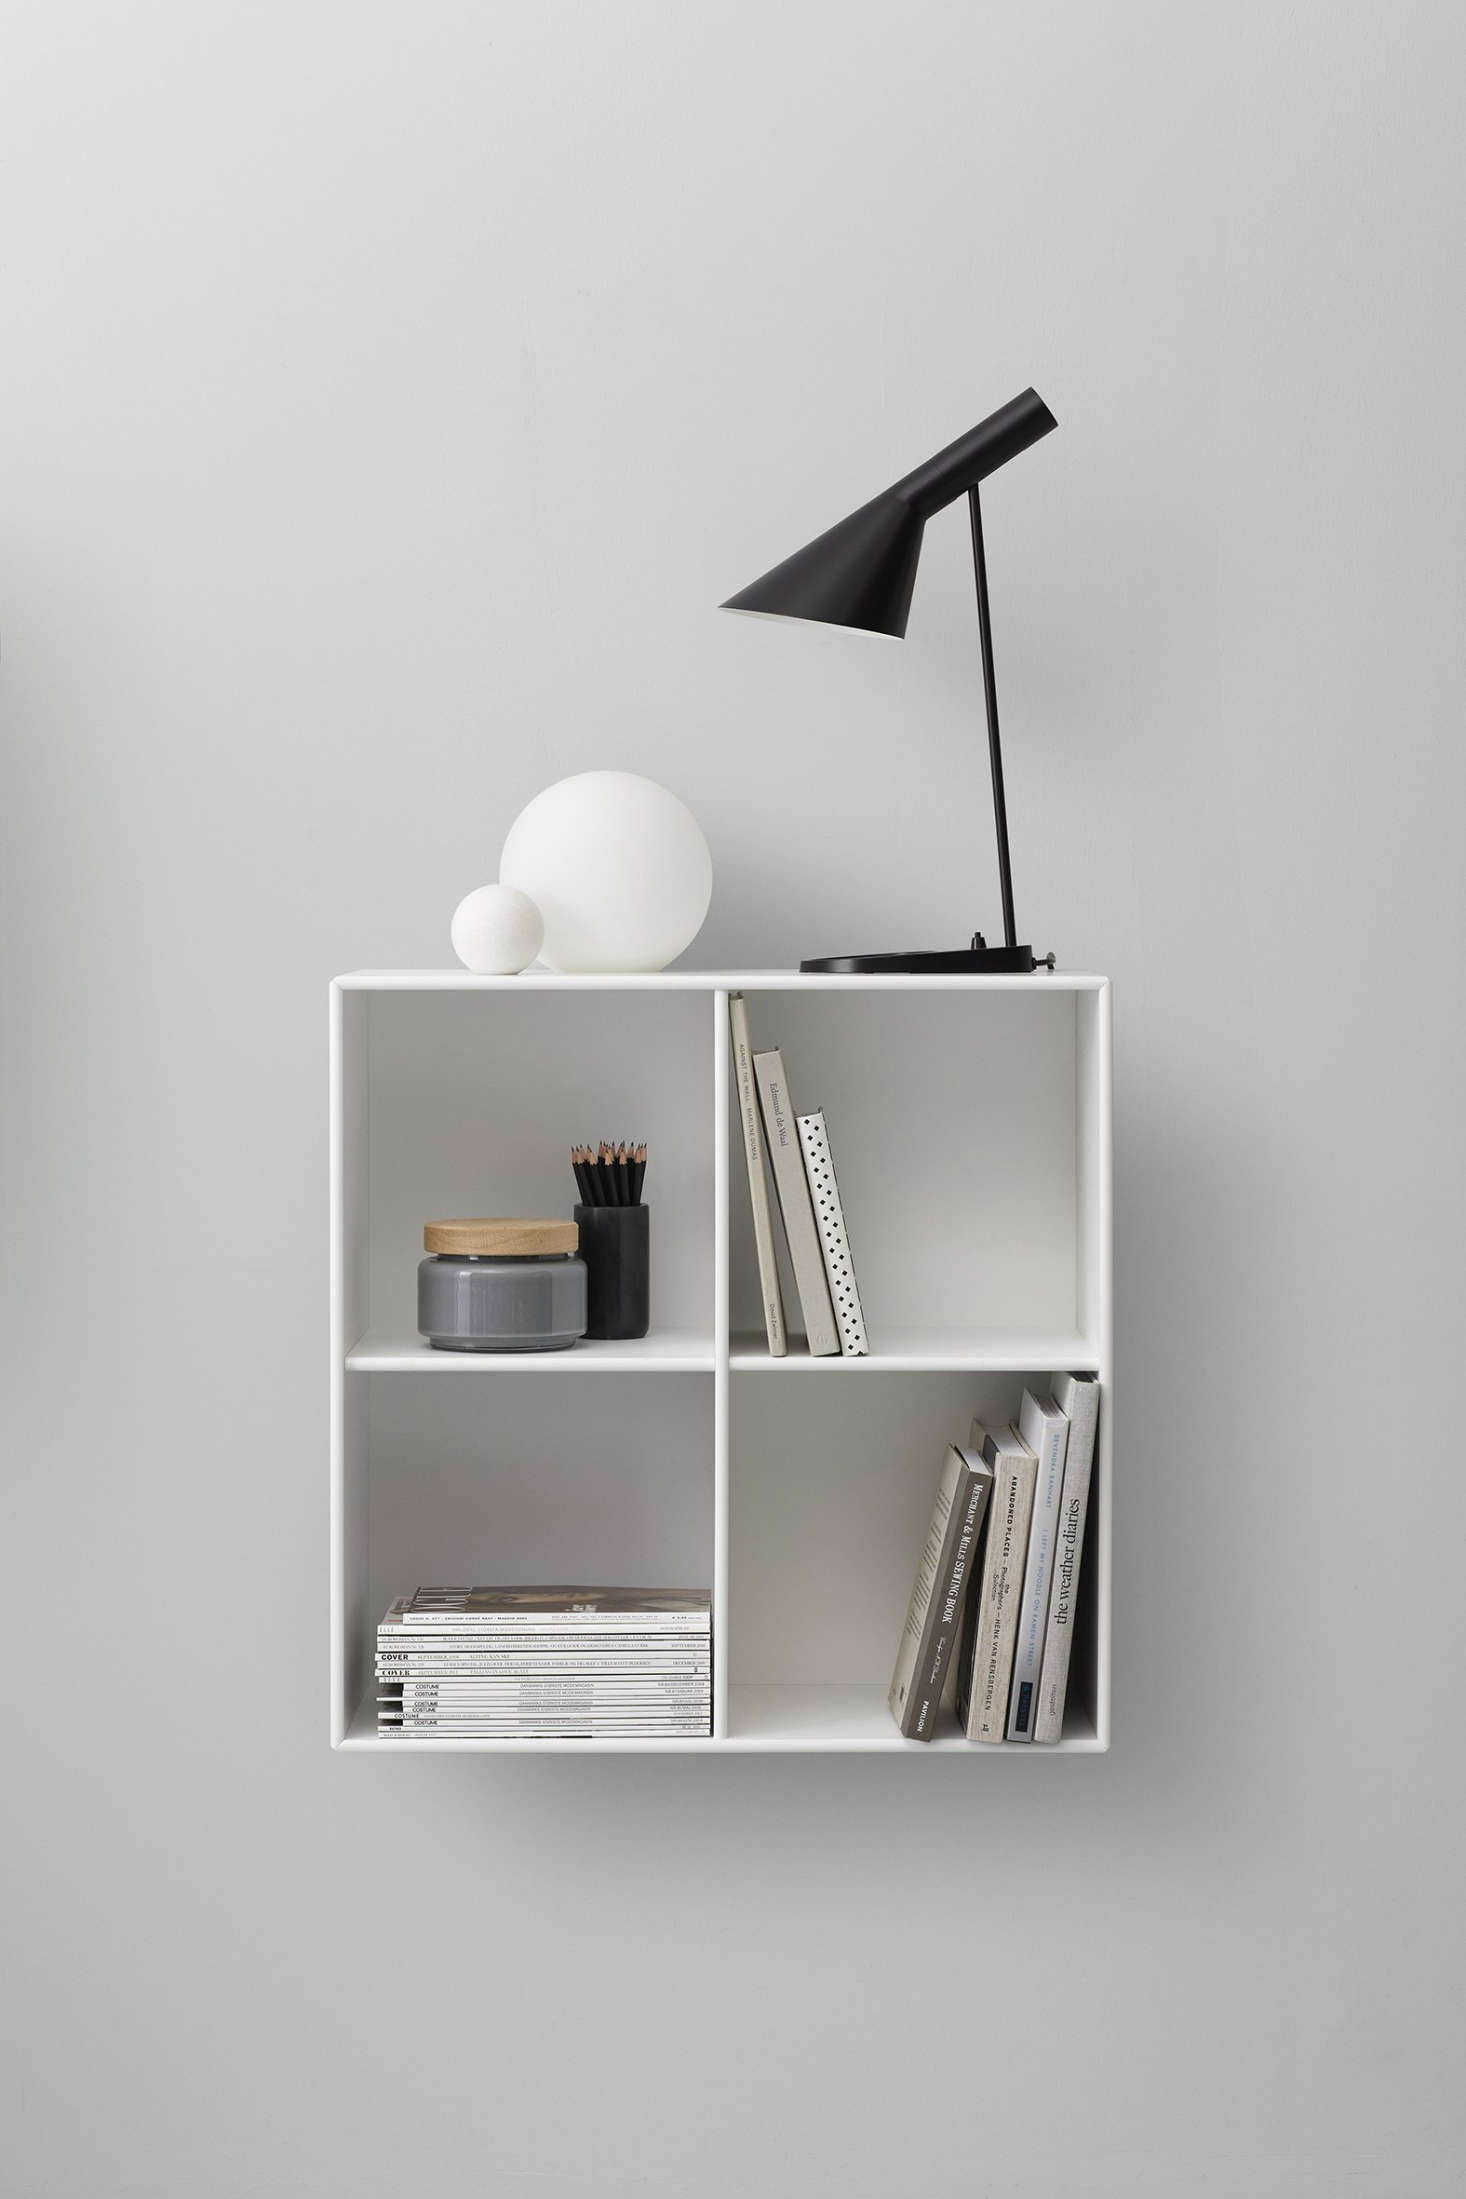 Modular Household Storage Systems From Montana Of Denmark